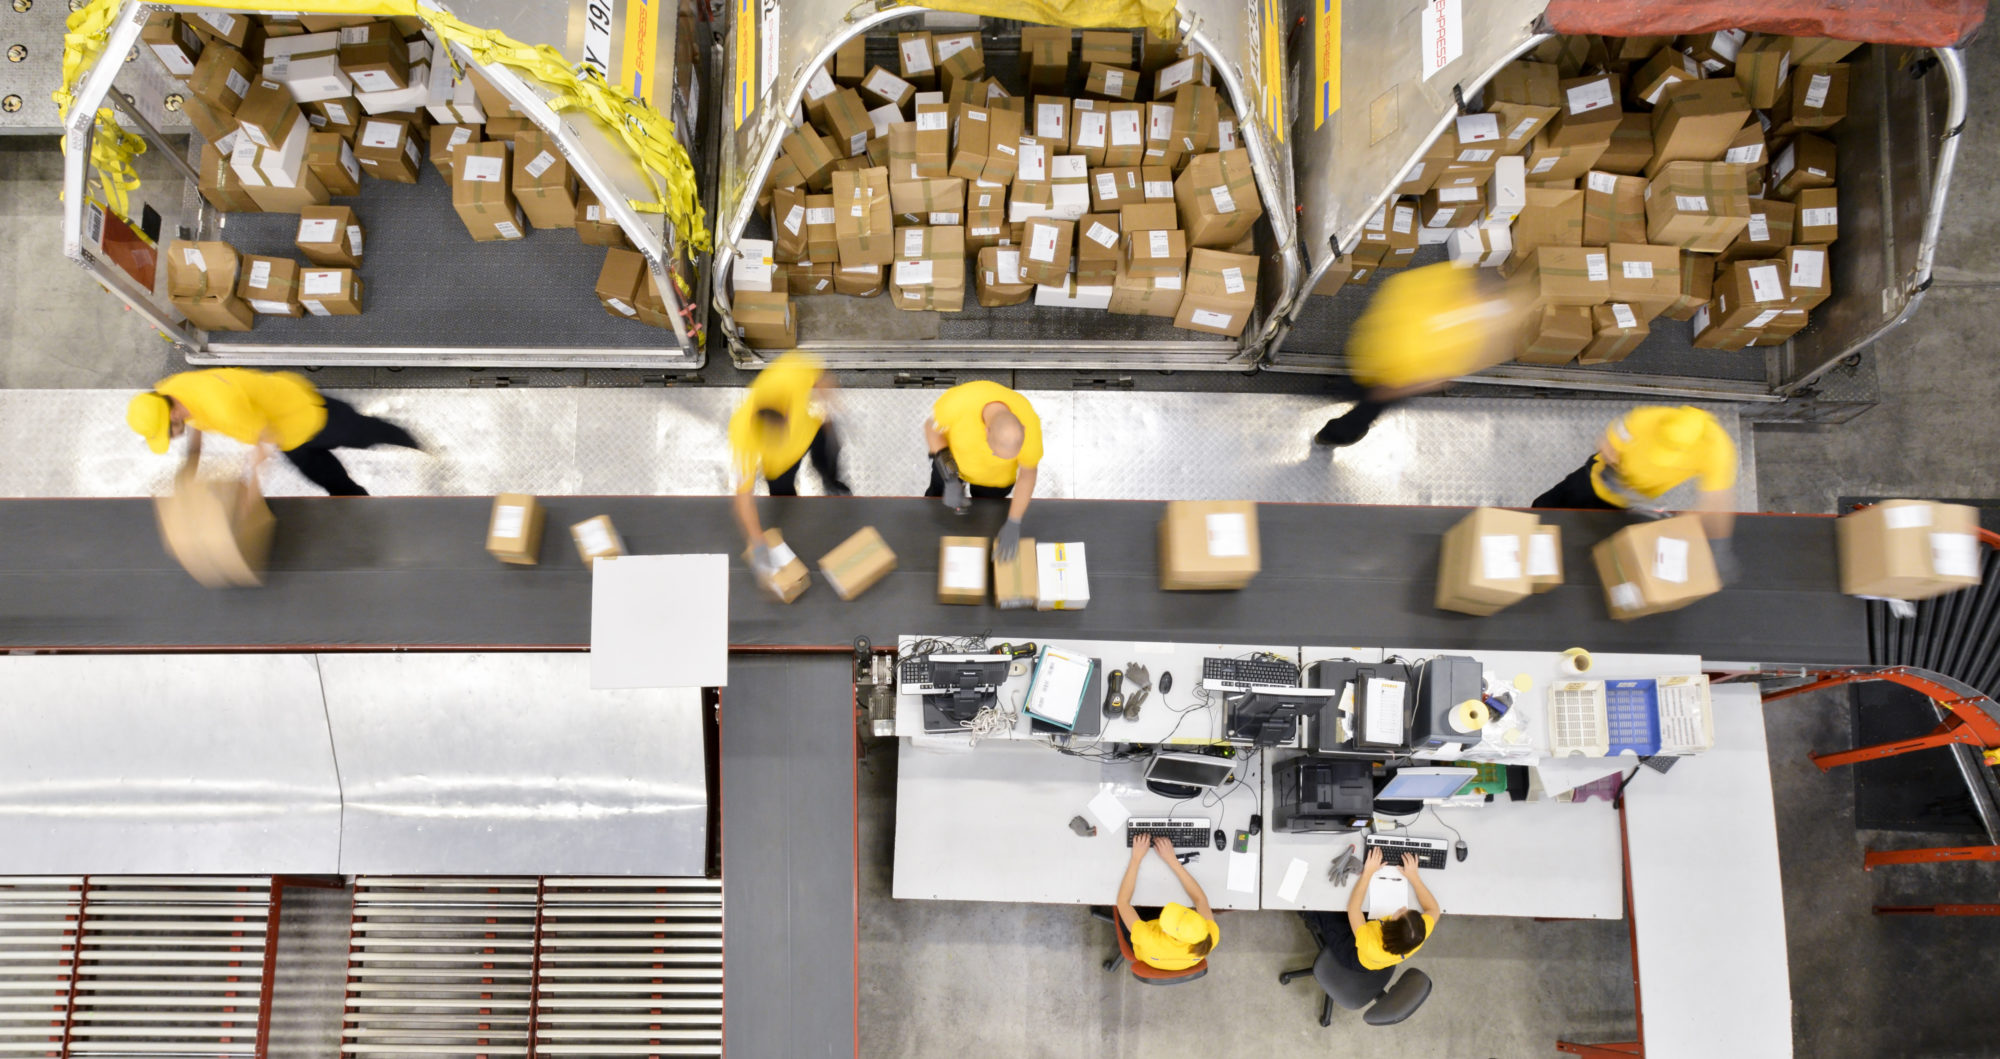 Workers processing boxes on conveyor belt in distribution warehouse,